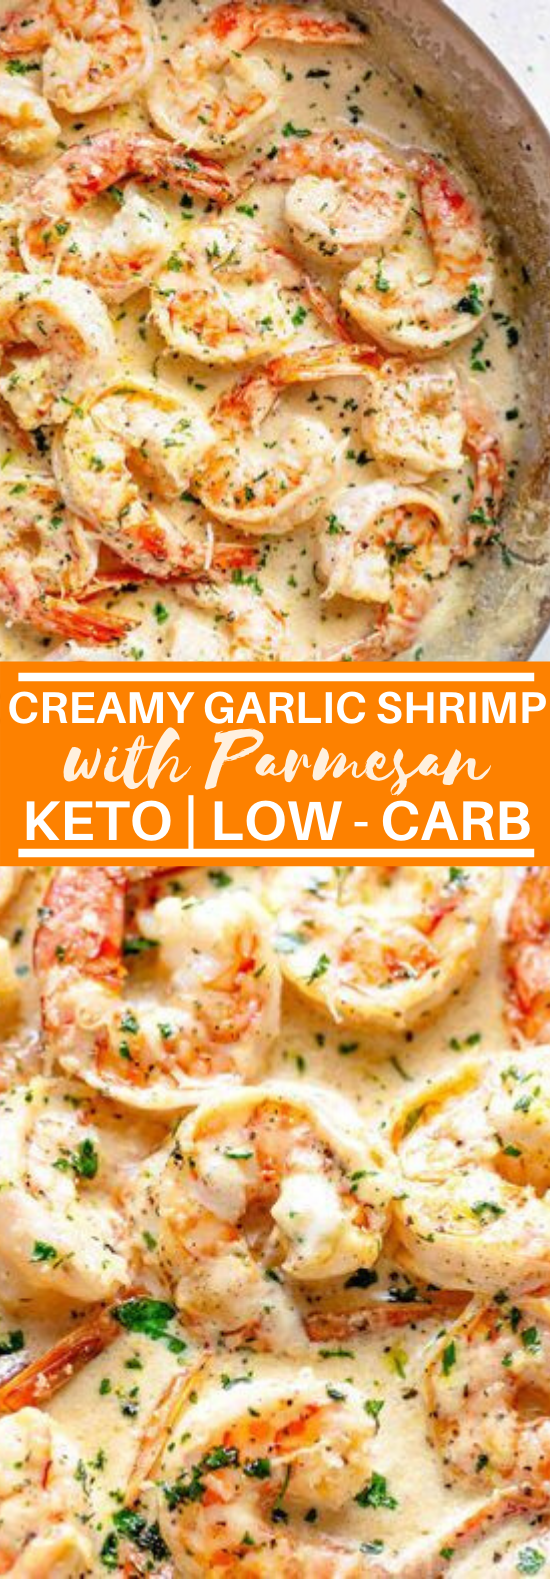 Creamy Garlic Shrimp With Parmesan (Low Carb) #lowcarb #recipes #keto #dinner #shrimp